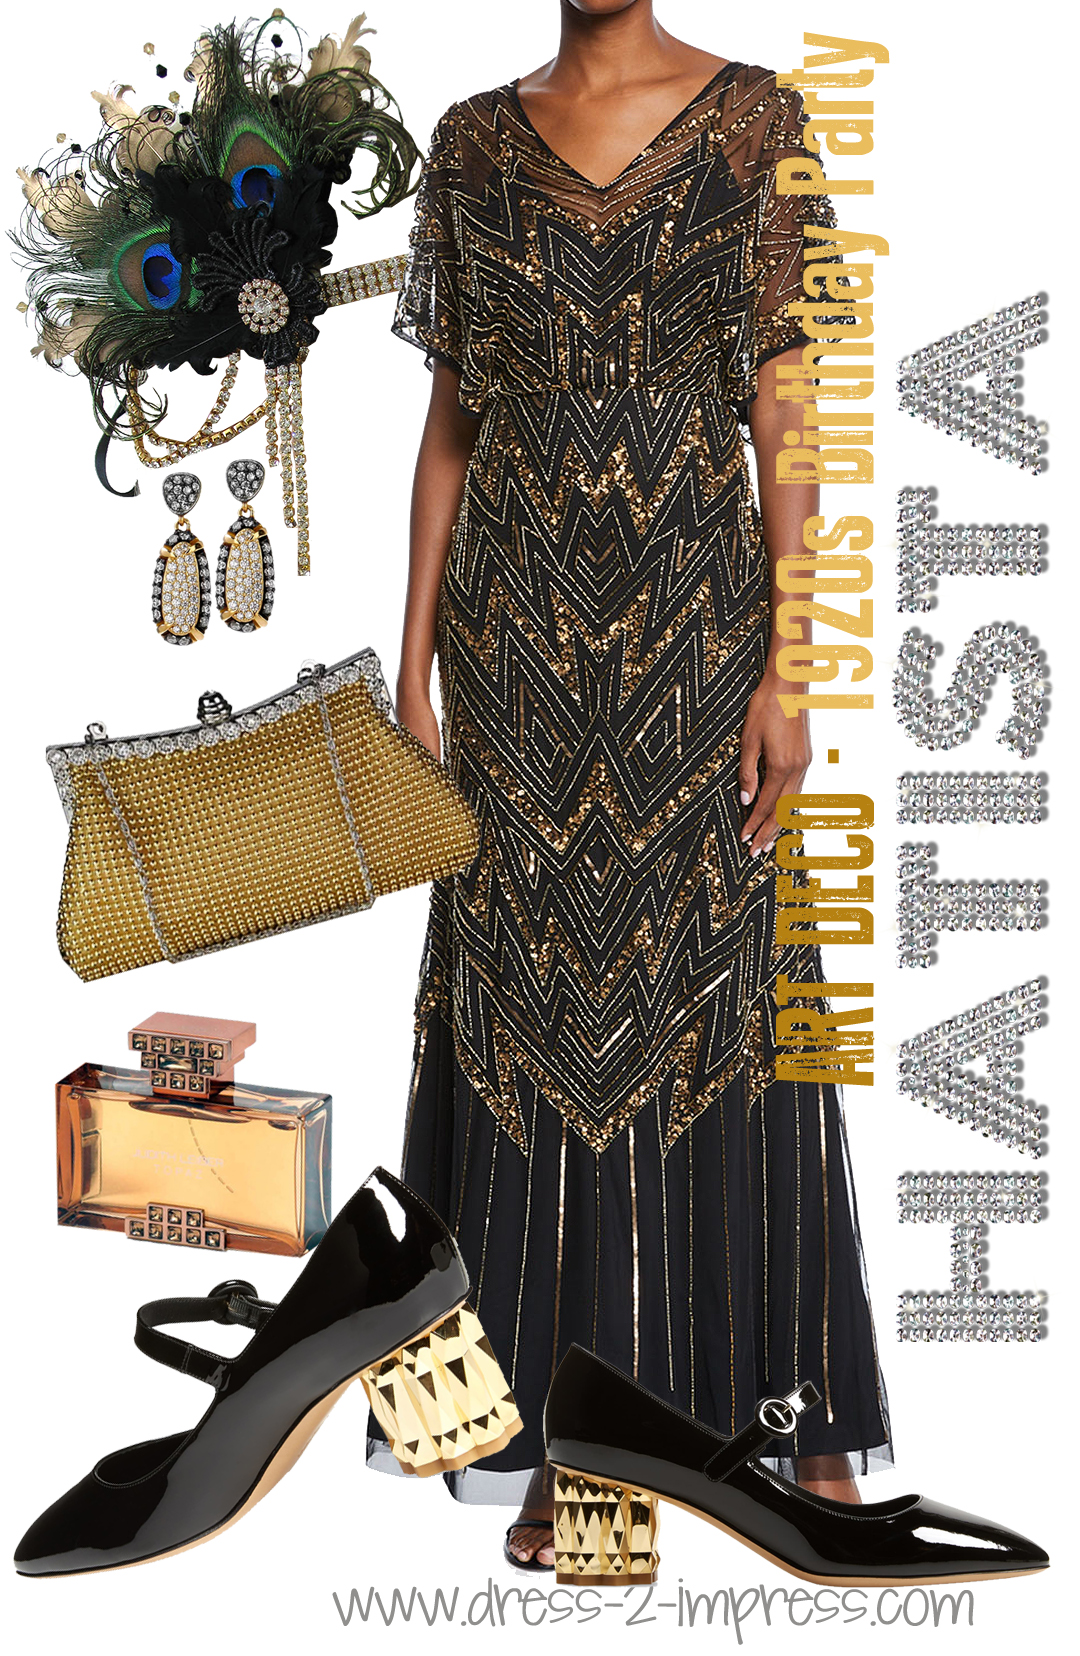 black gold gatsby outfit inspiration what to wear to a great gatsby party ideas outfit inspiration